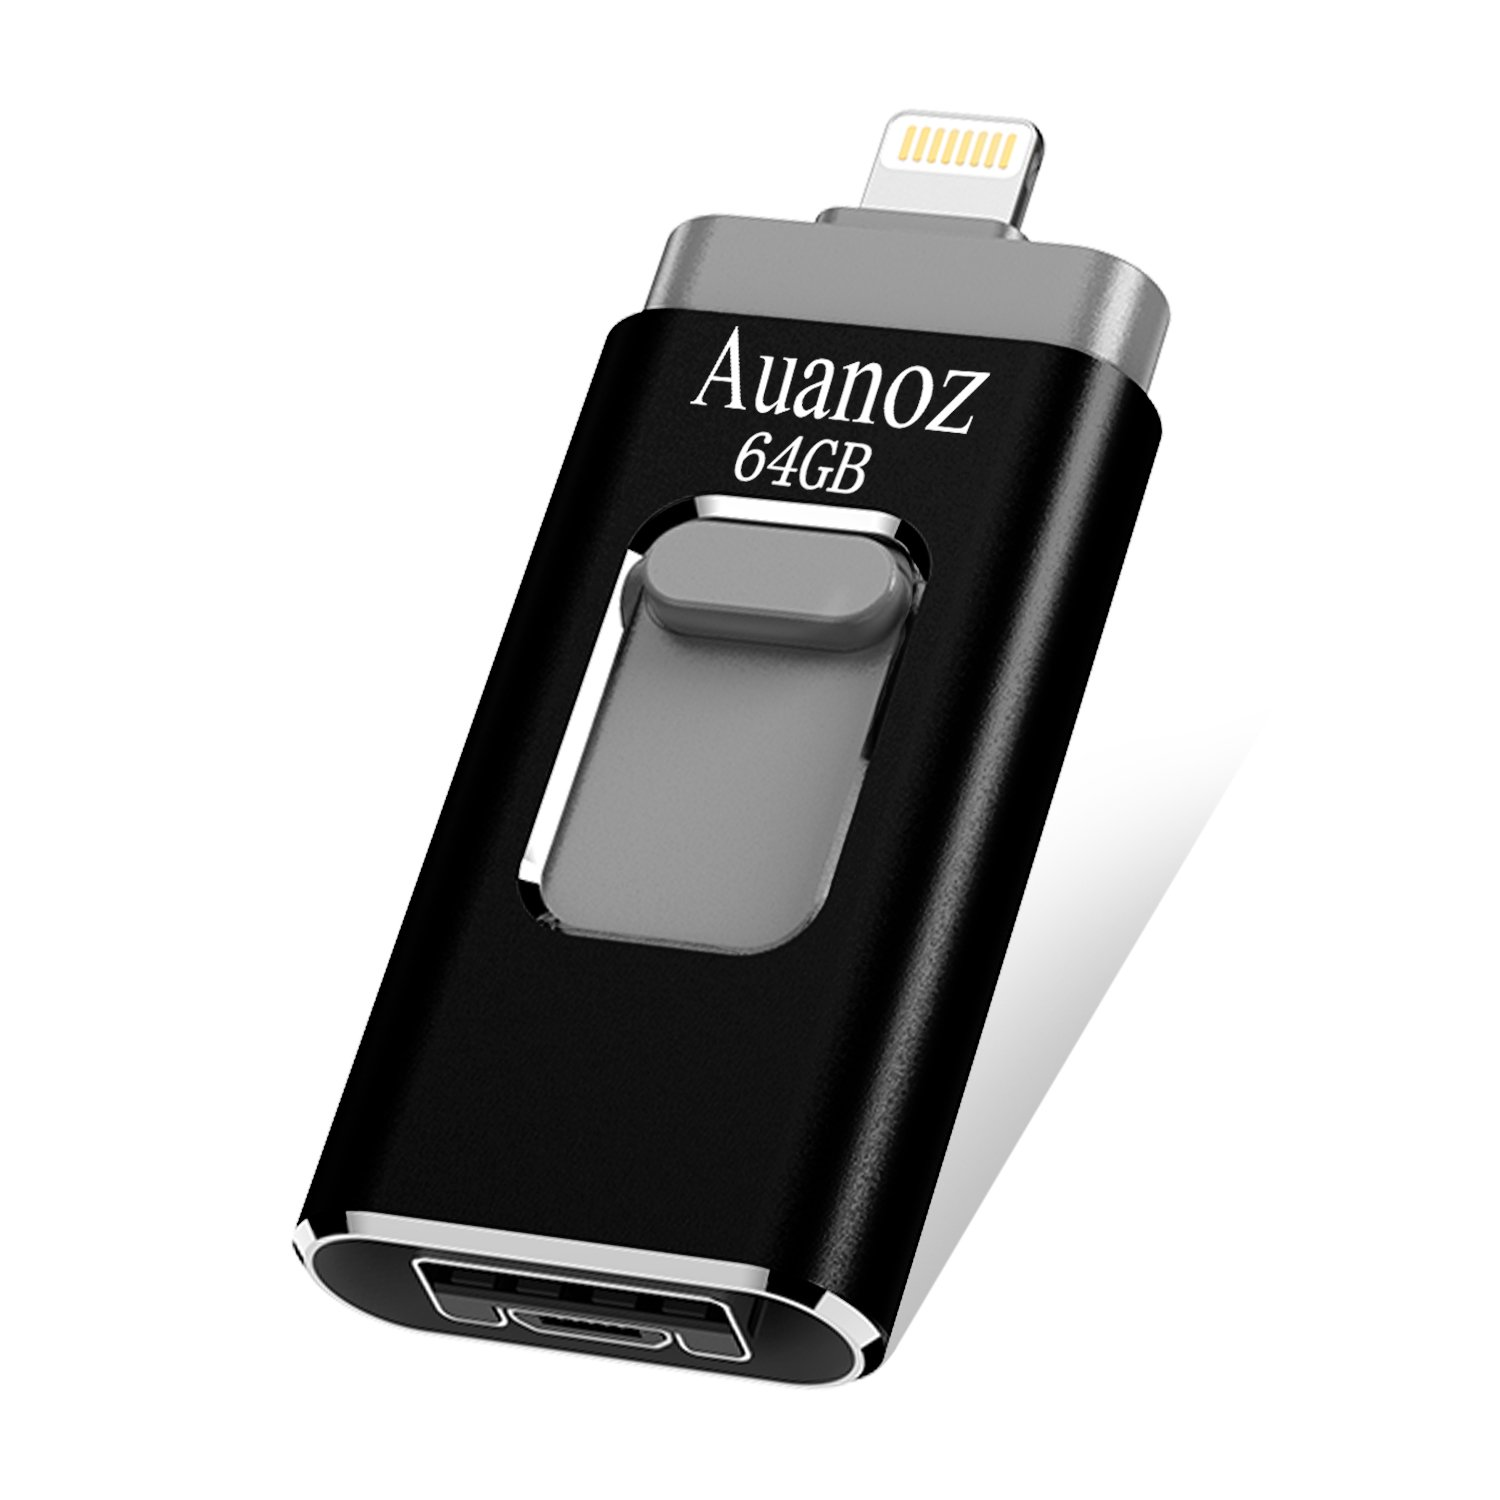 Auanoz IOS Flash Drives 32 GB iPhone Memory Stick Amazon puter & Zubehör